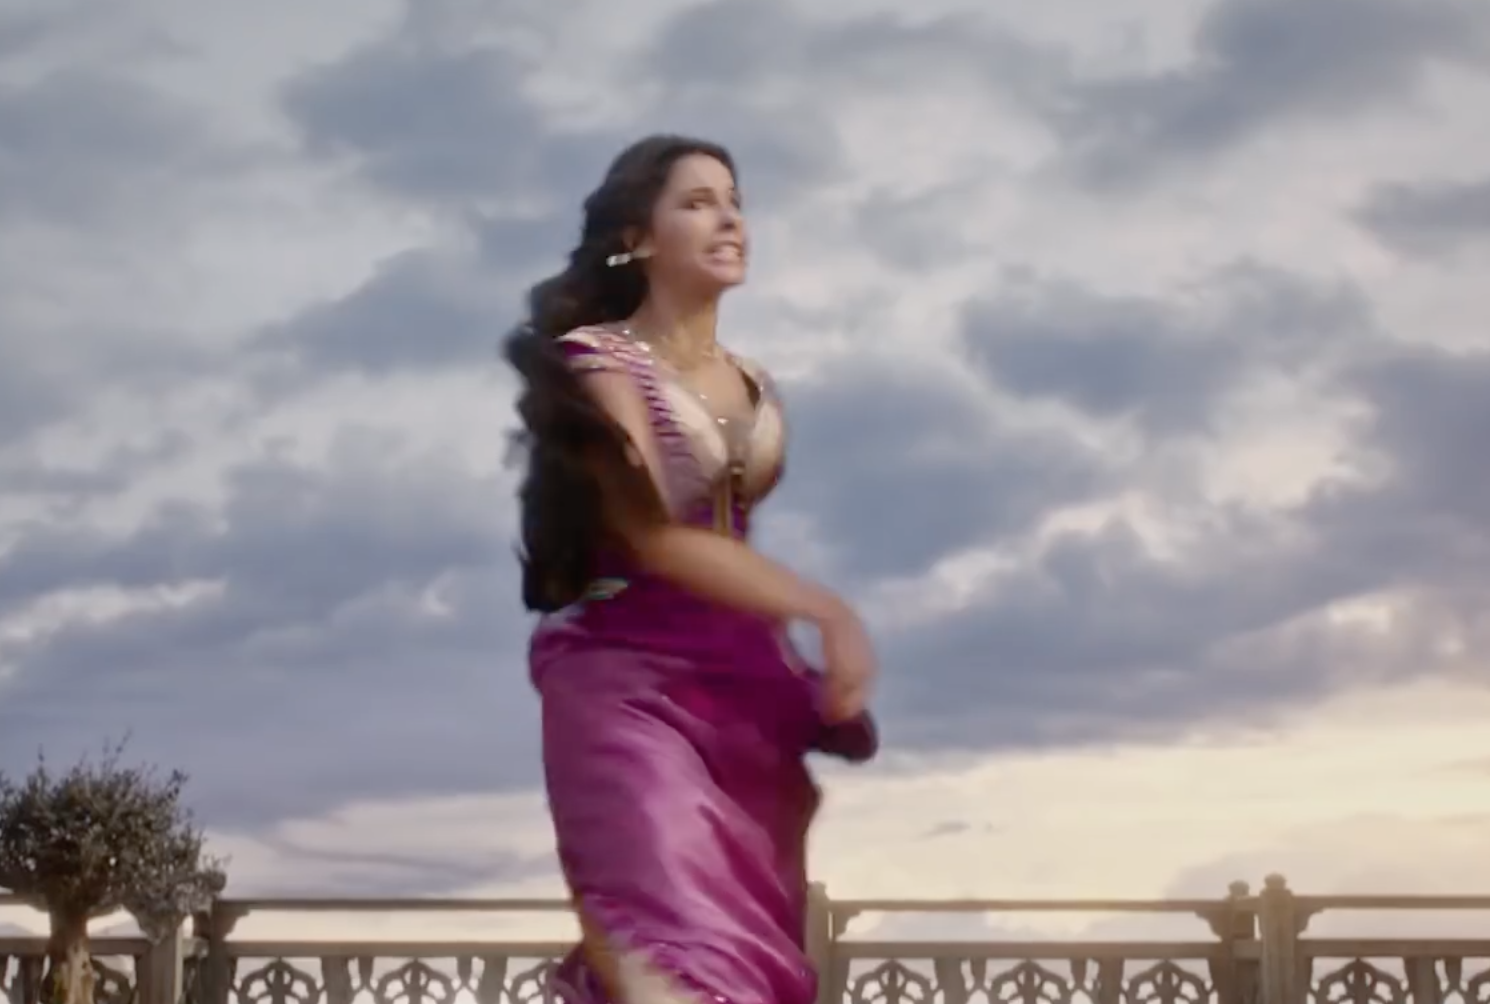 10 Things You Can Do To Look And Feel Like Princess Jasmine From Aladdin